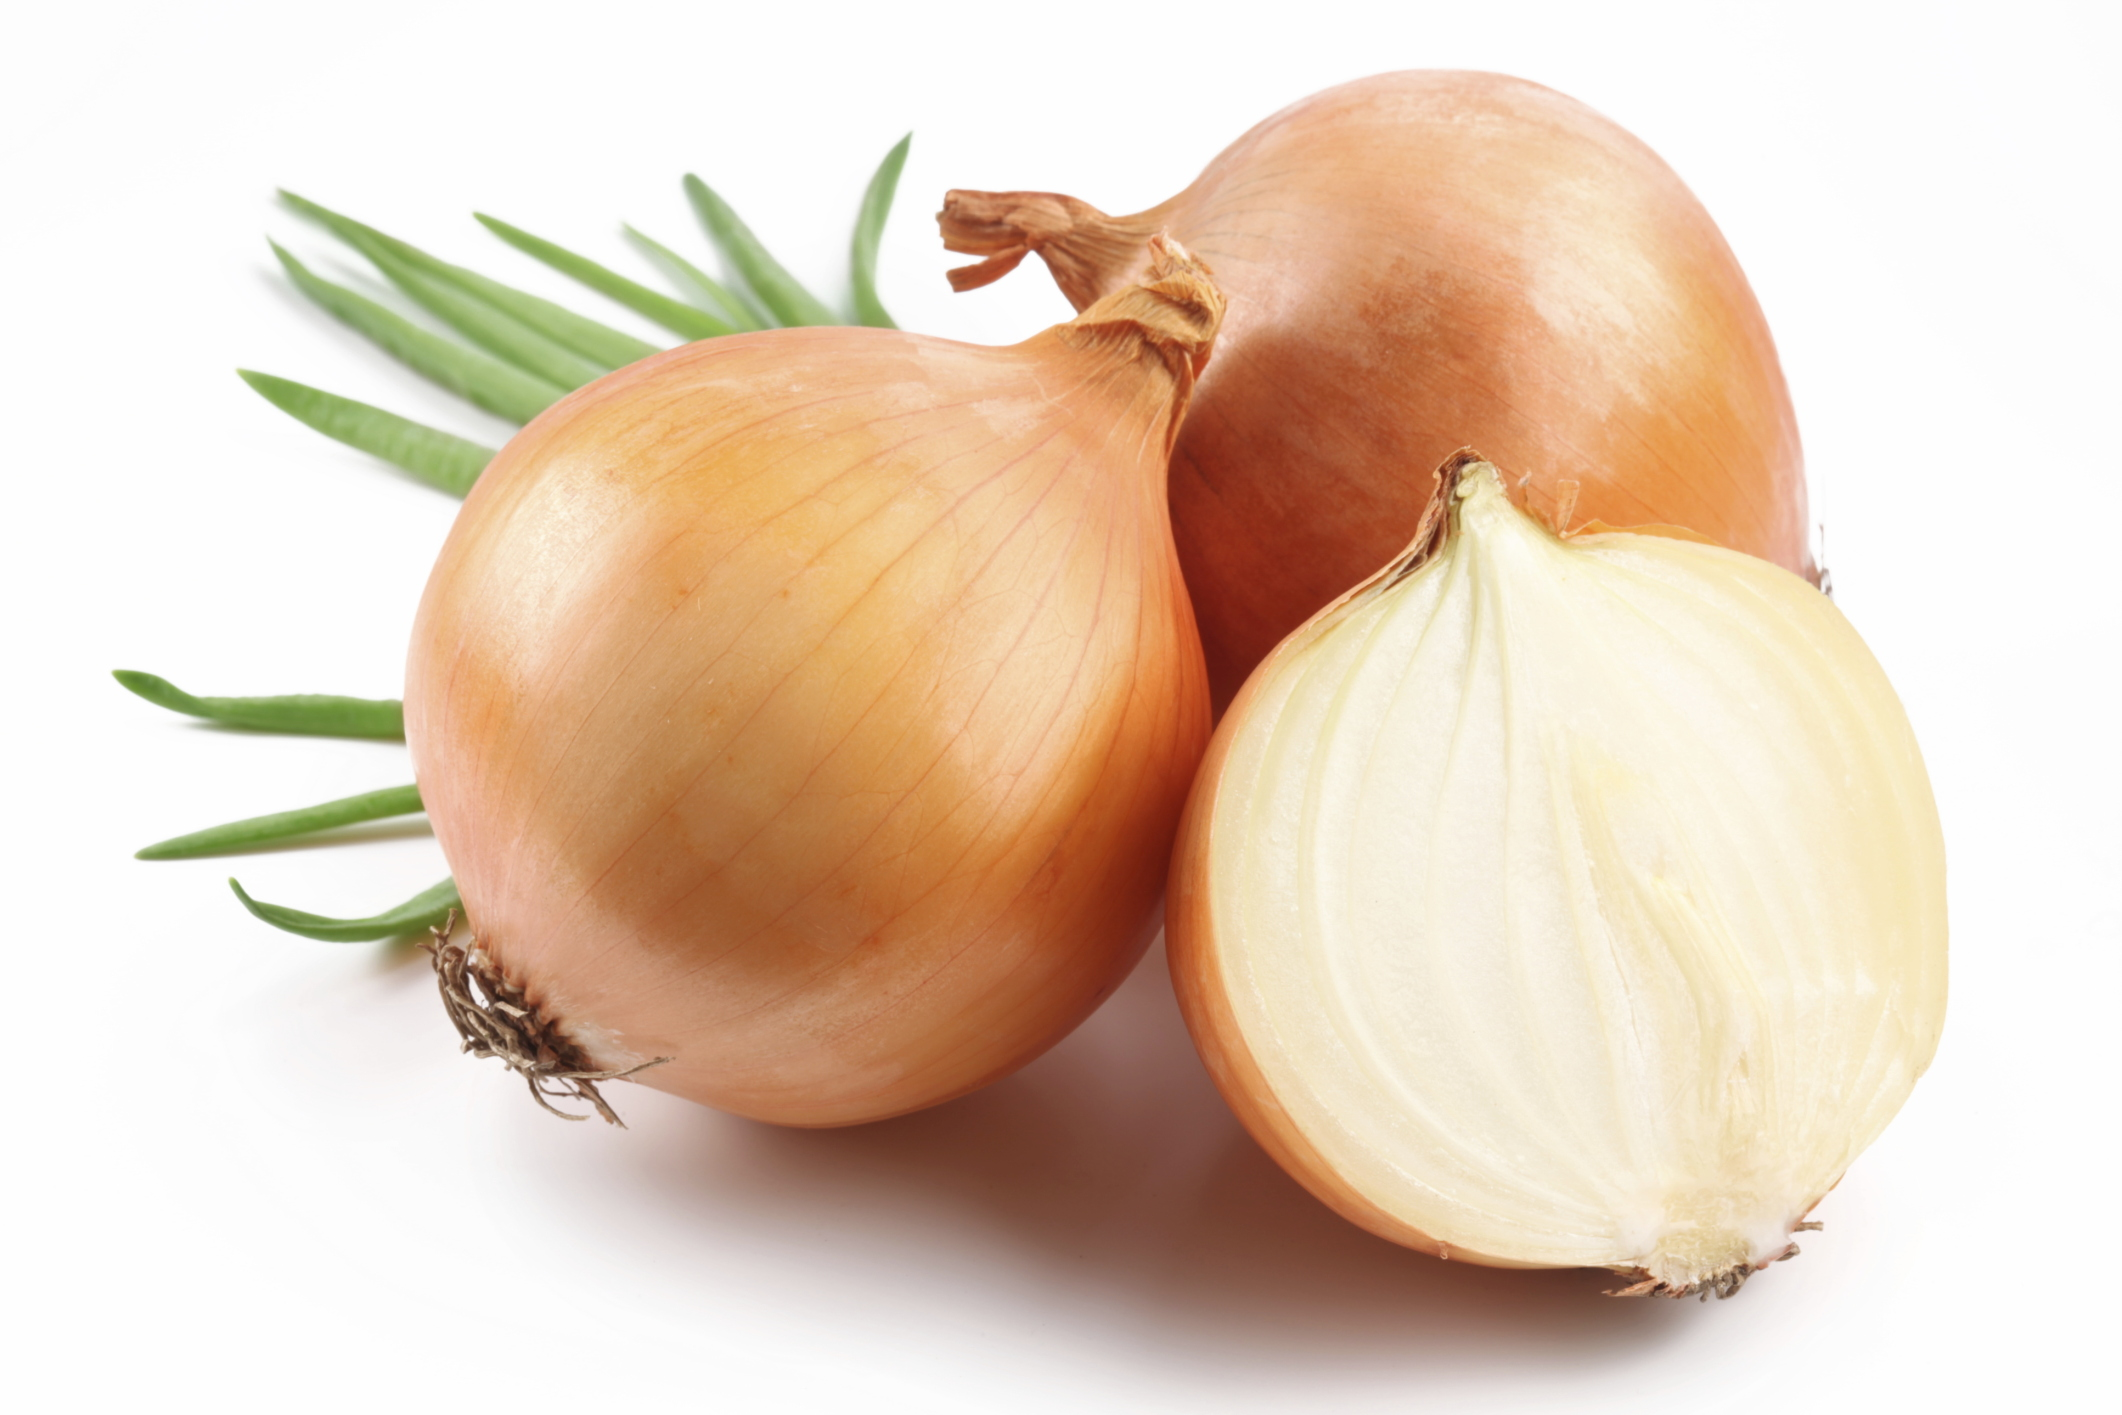 Fresh Onion in Section 195.88 Kb